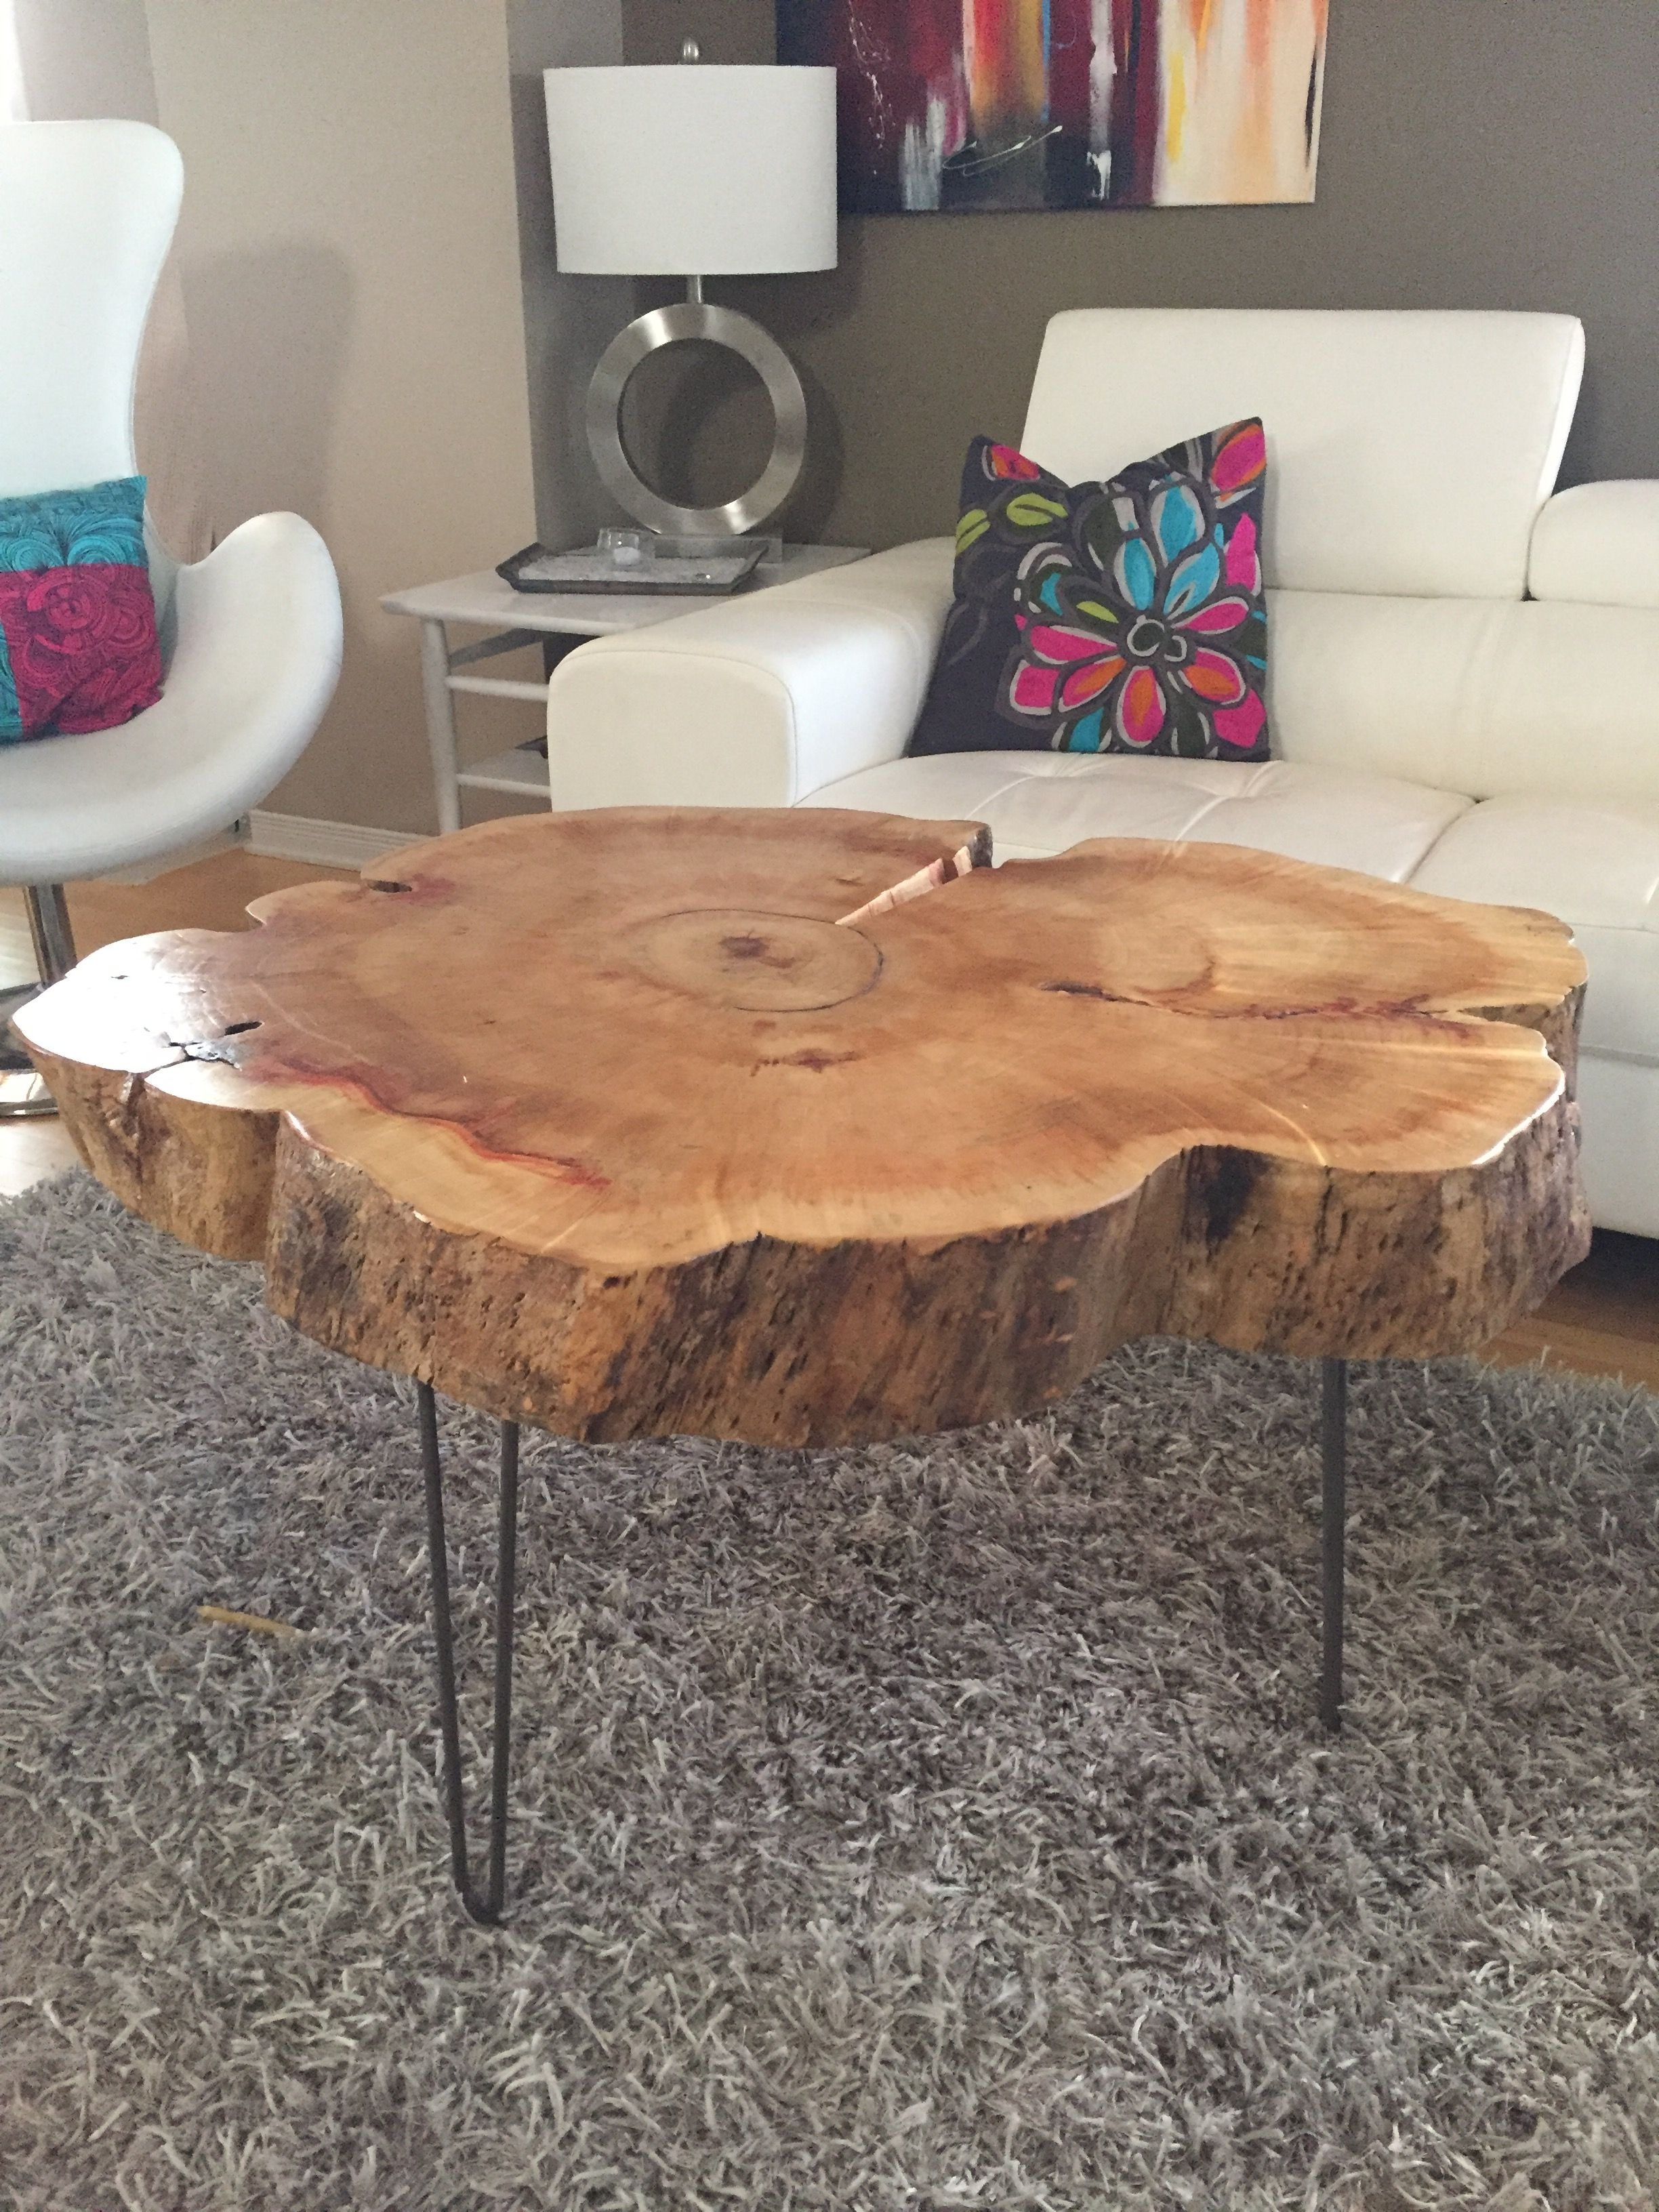 Tree Trunk Table With Metal Legs, Wood Coffee Table With Hairpin Inside Sliced Trunk Coffee Tables (View 29 of 30)